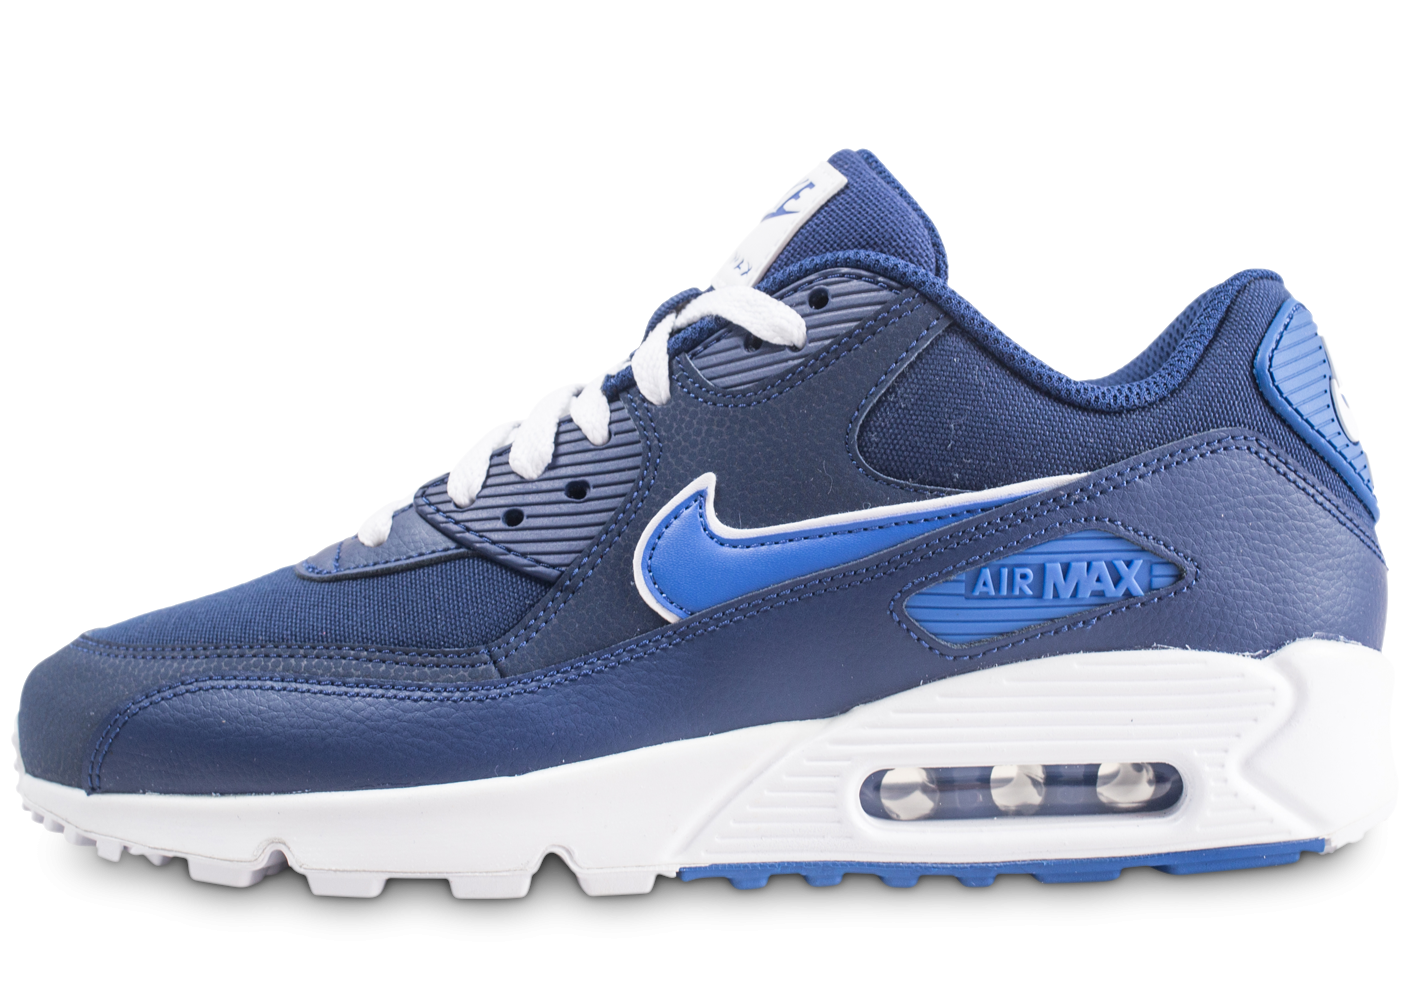 new product 91650 bcfee Nike Air Max 90 Essential bleu - Chaussures Baskets homme - Chausport